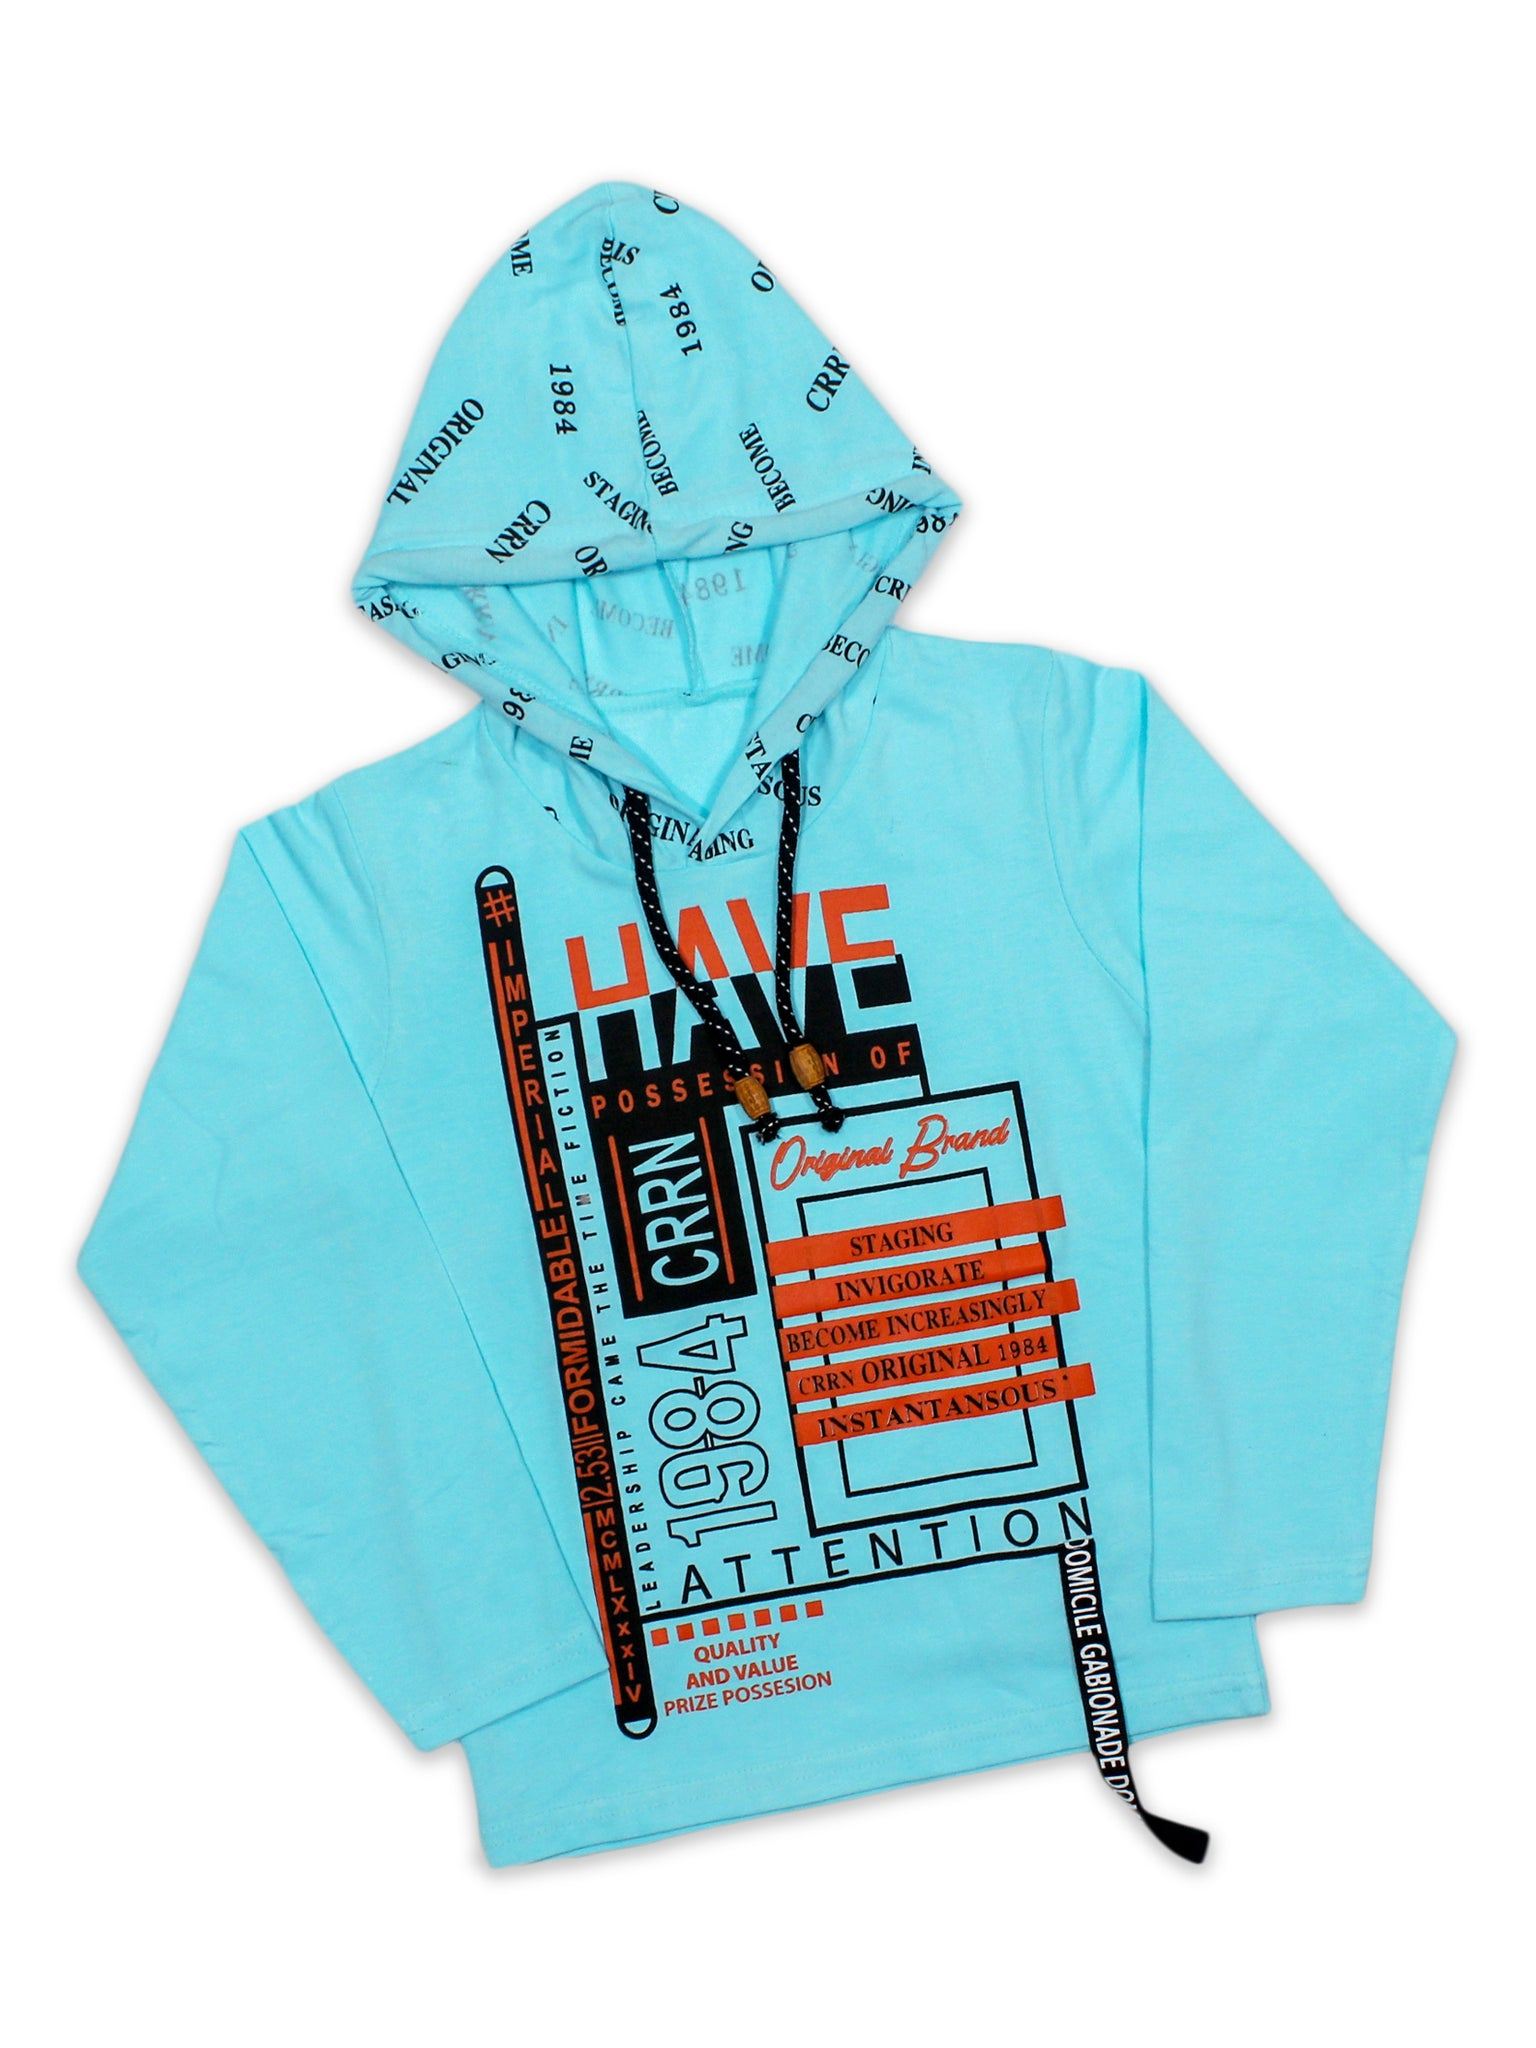 ATT Boys Hooded Neck T-Shirt 3 Yrs - 10 Yrs Printed Have Blue